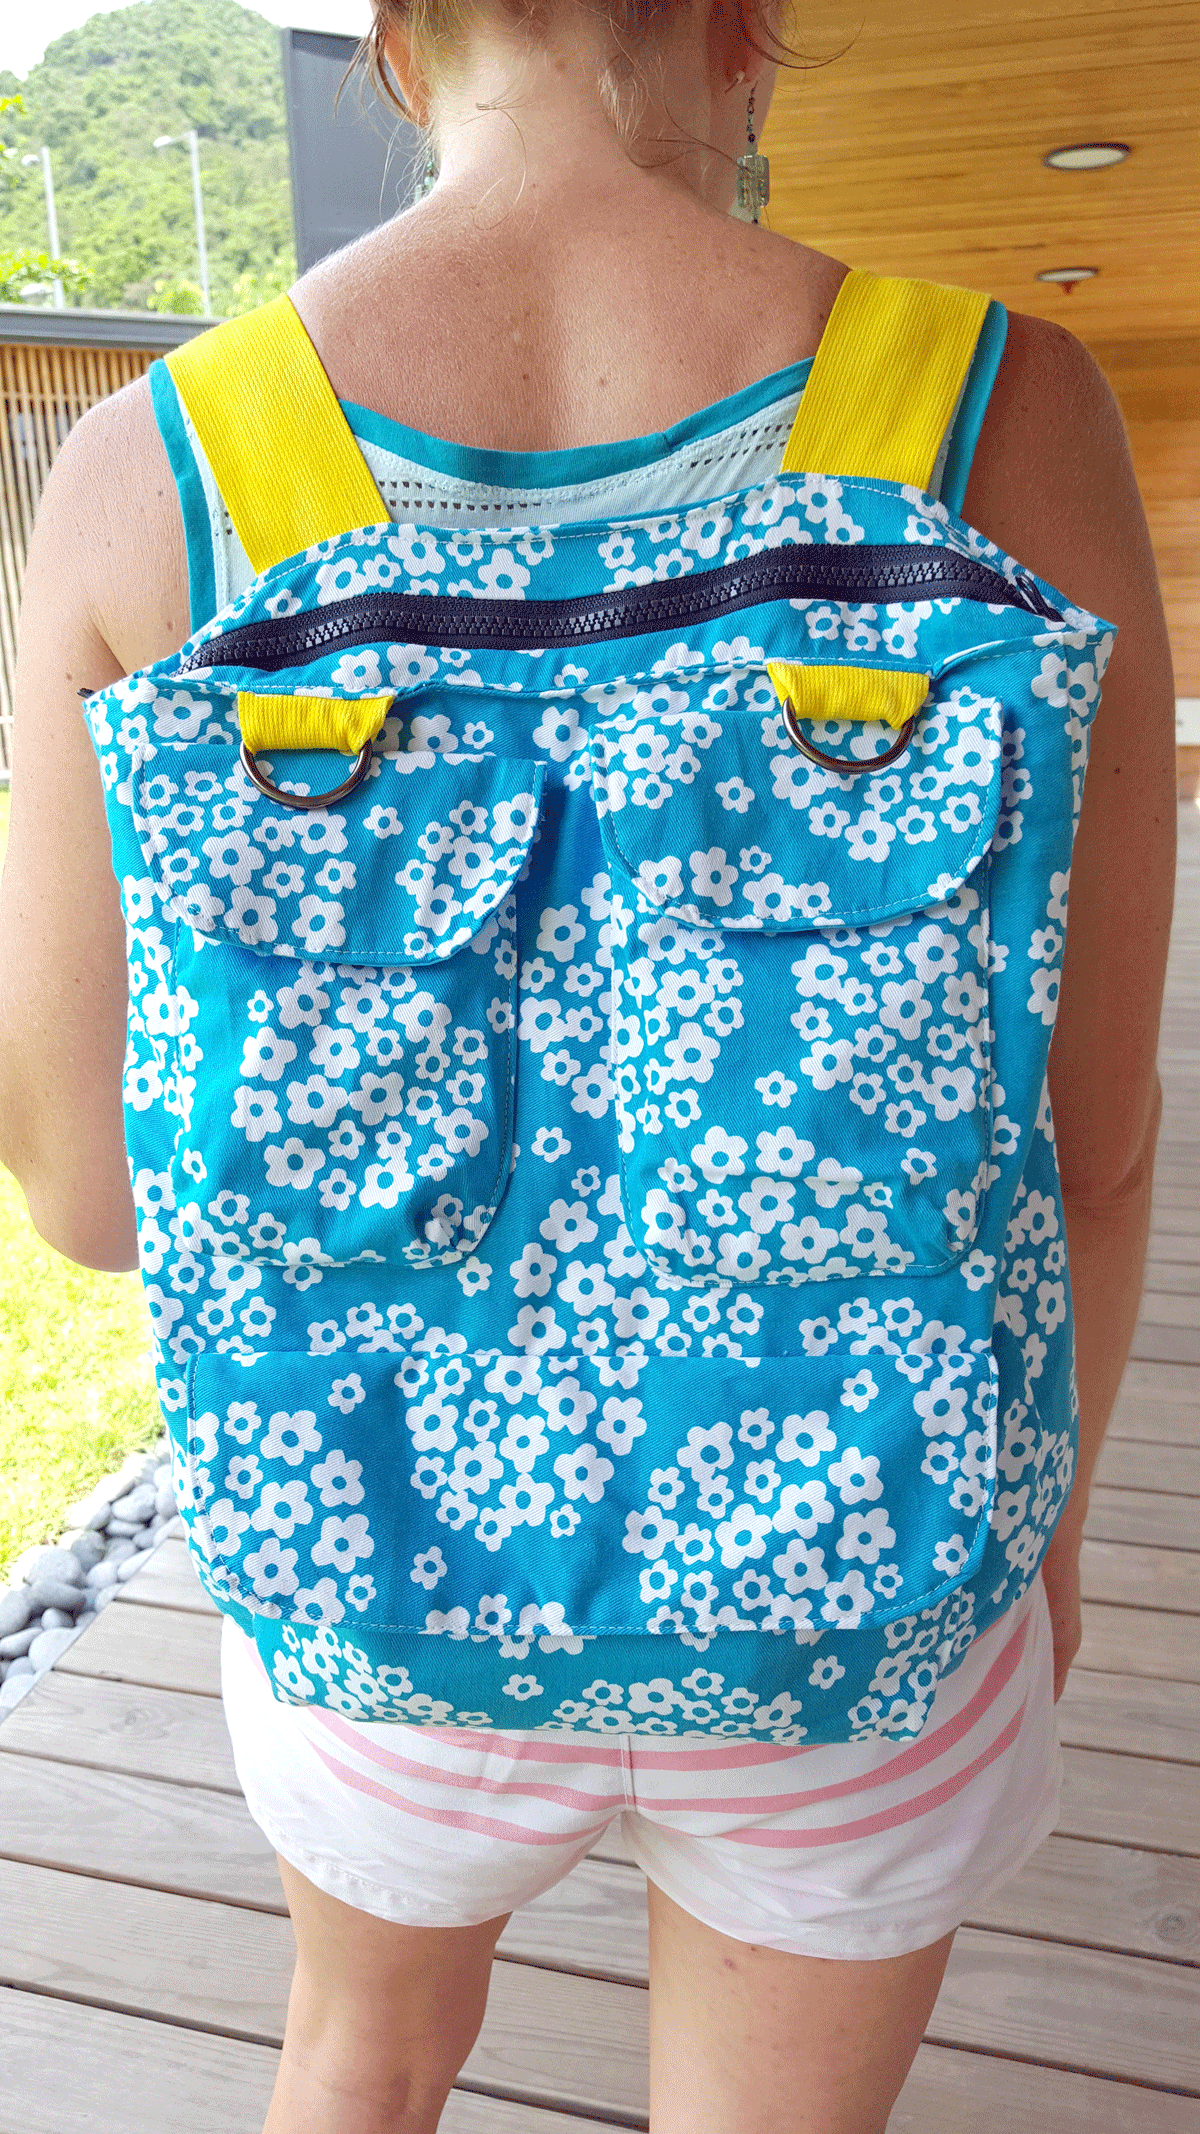 Convertible purse backpack free sewing pattern tutorial by nap convertible purse backpack free sewing pattern tutorial by nap time creations jeuxipadfo Image collections